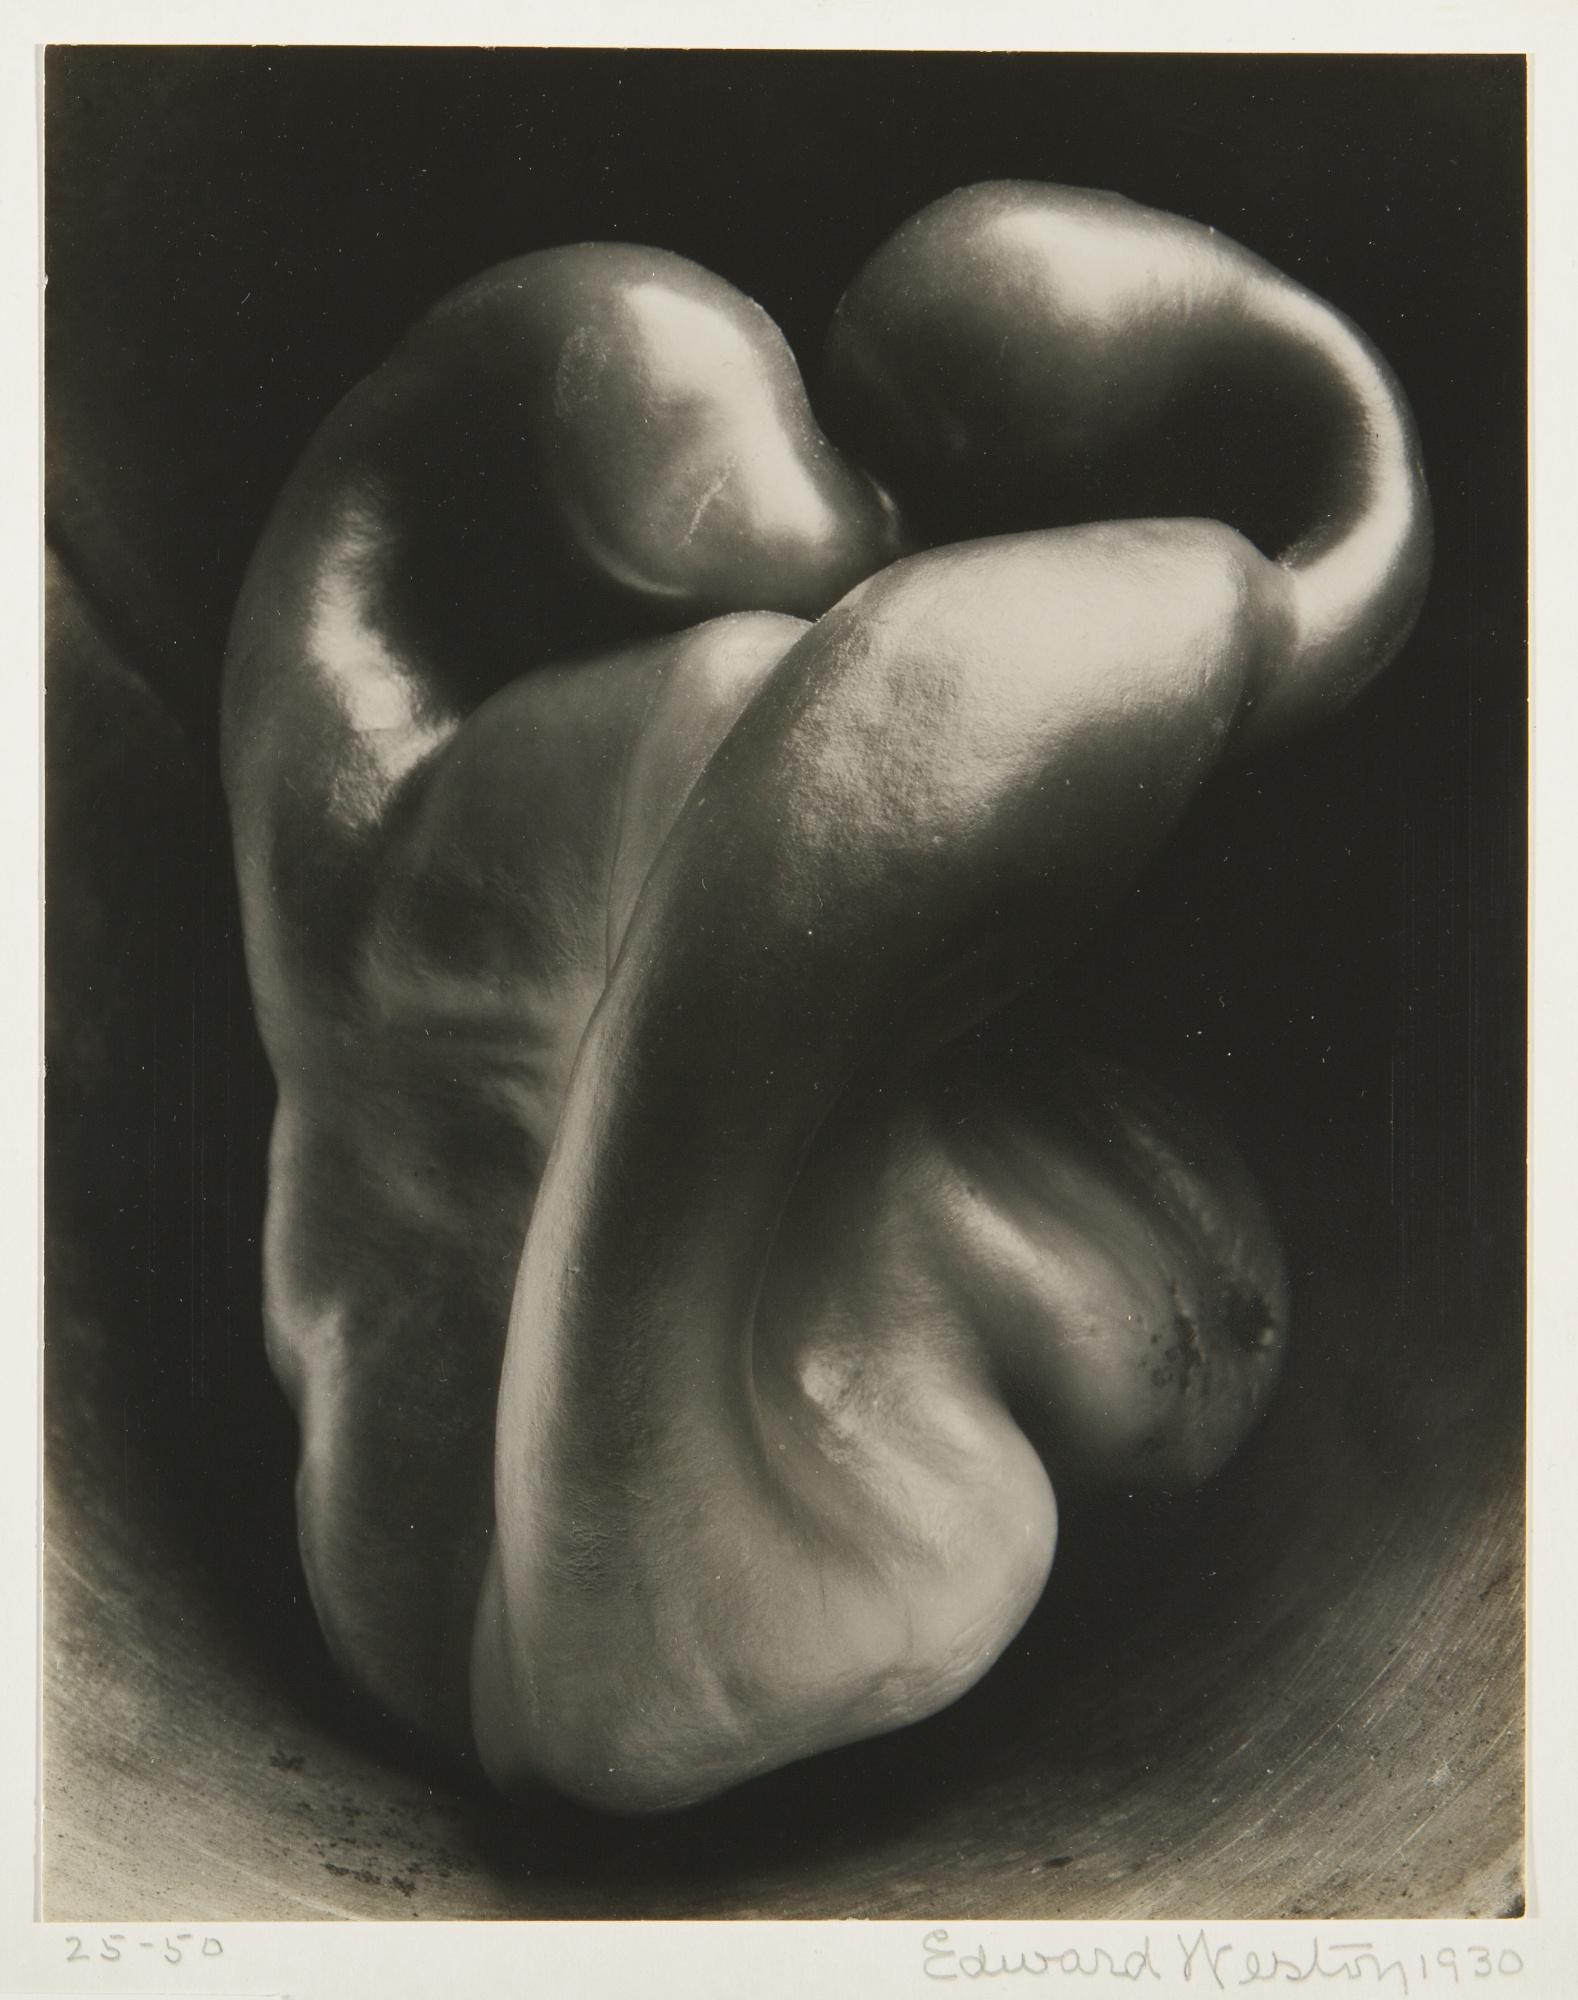 Edward Weston, Pepper n° 30, sothebys.com